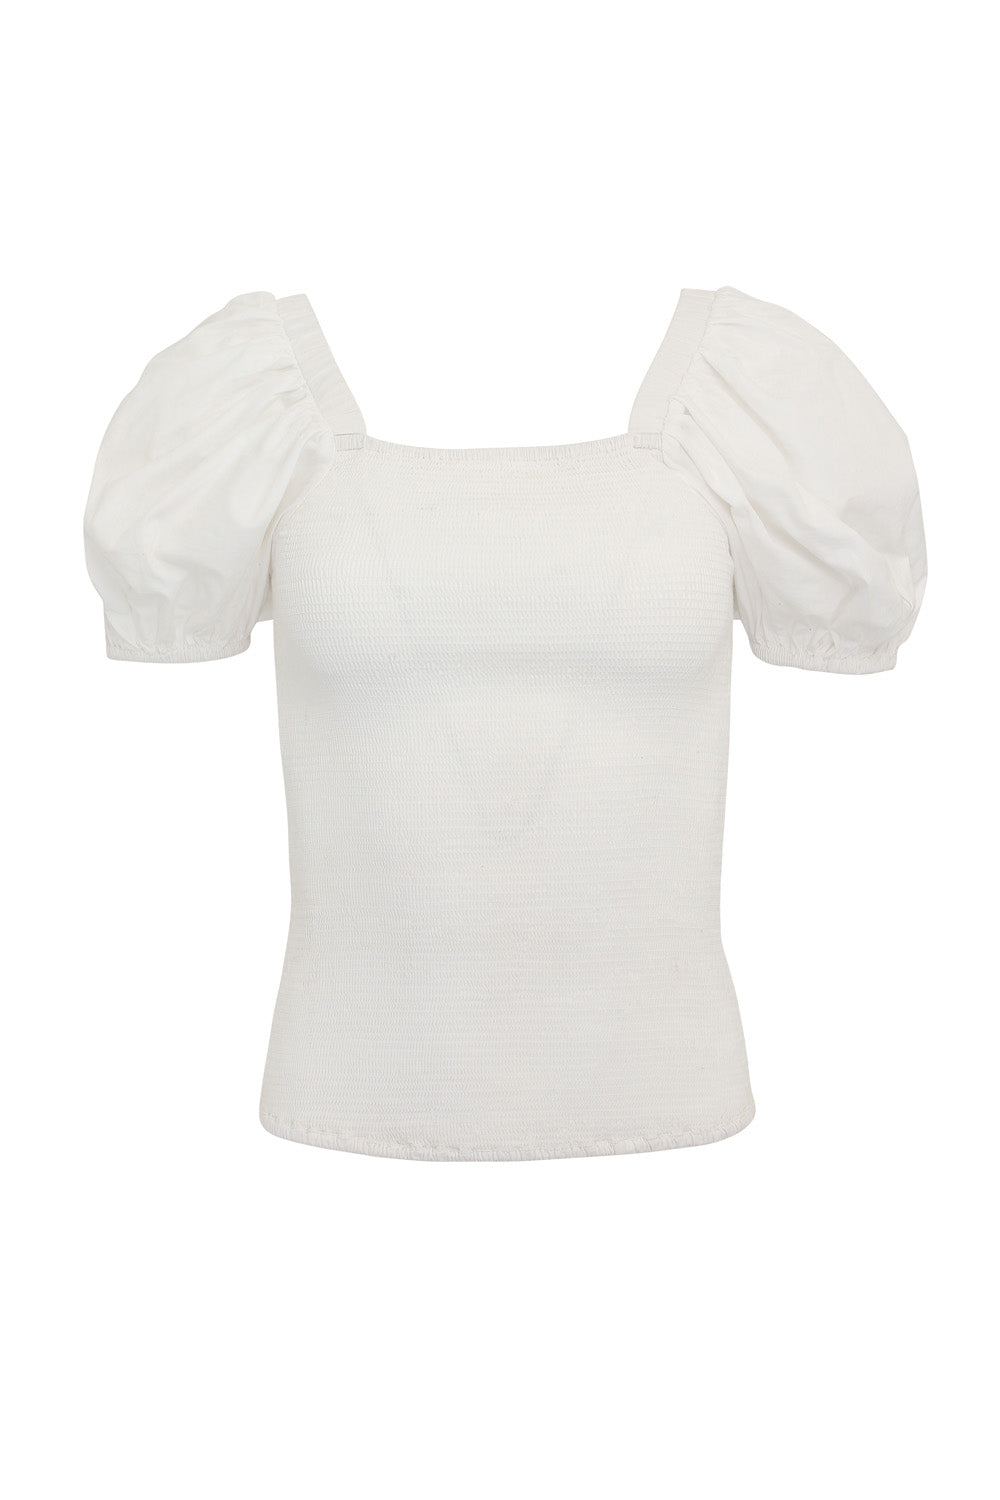 Bright Heart white top - Family Affairs